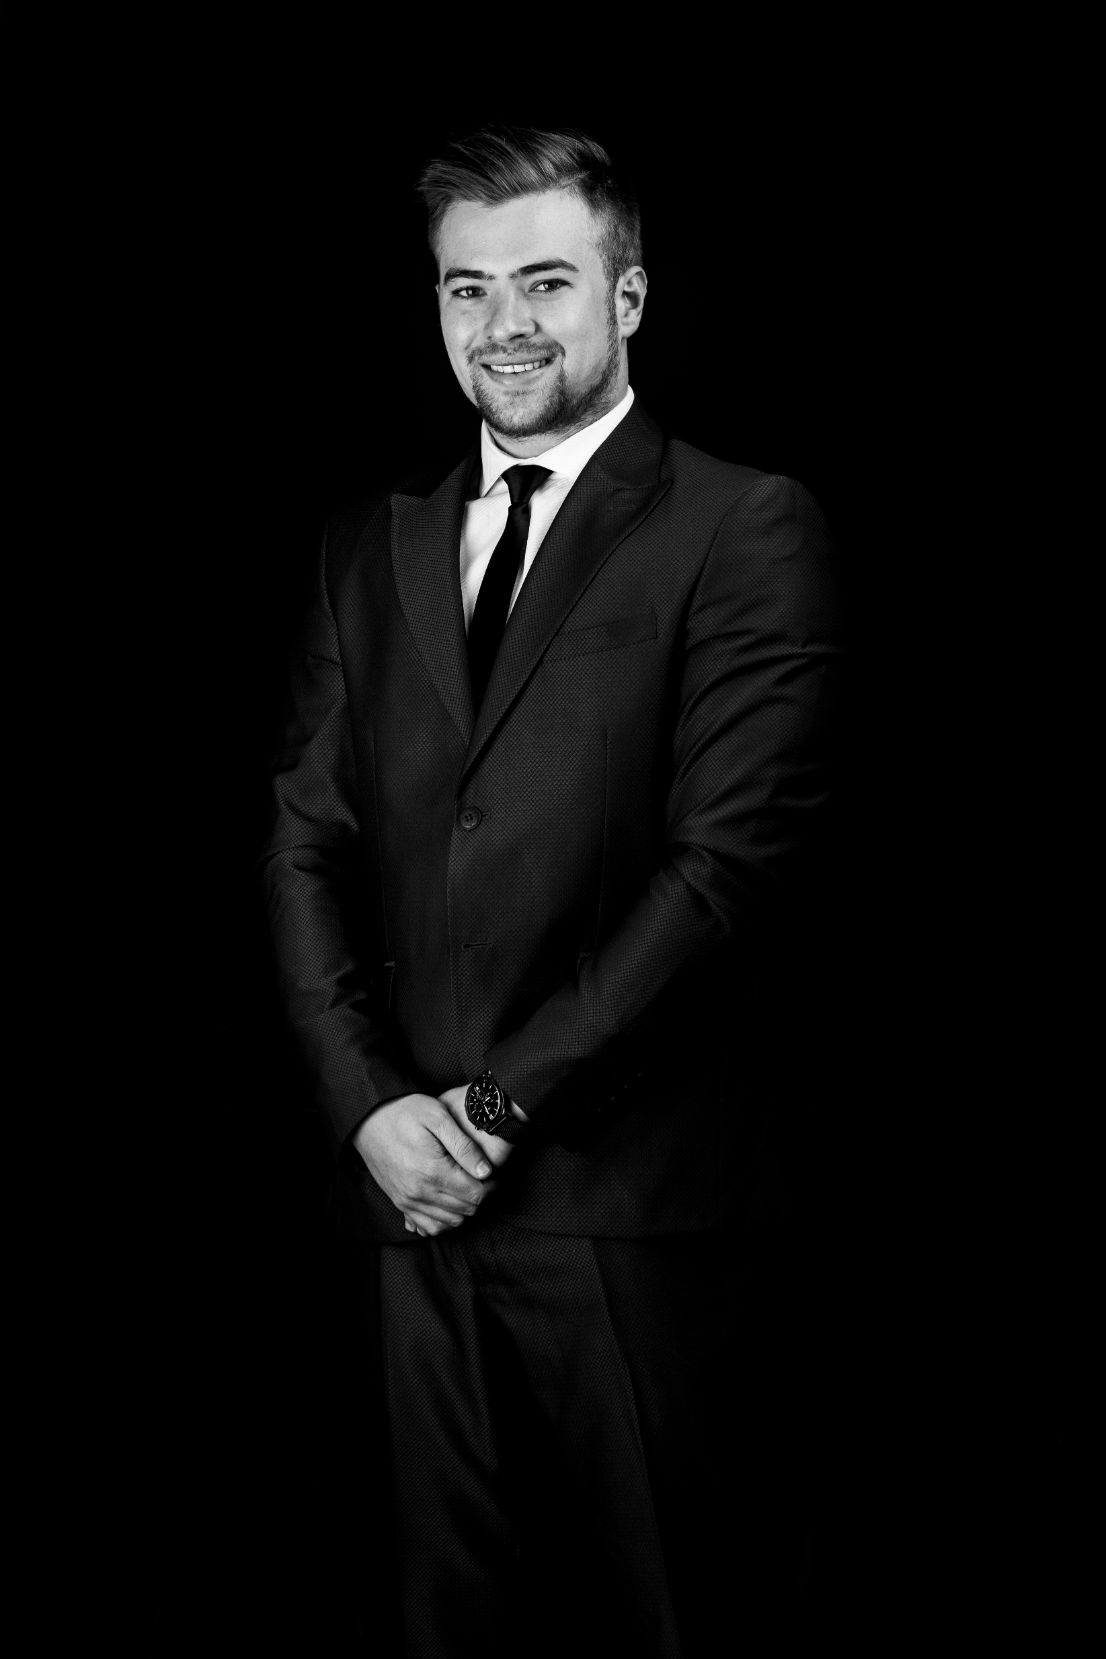 Devon Thomson, Commercial Property Broker